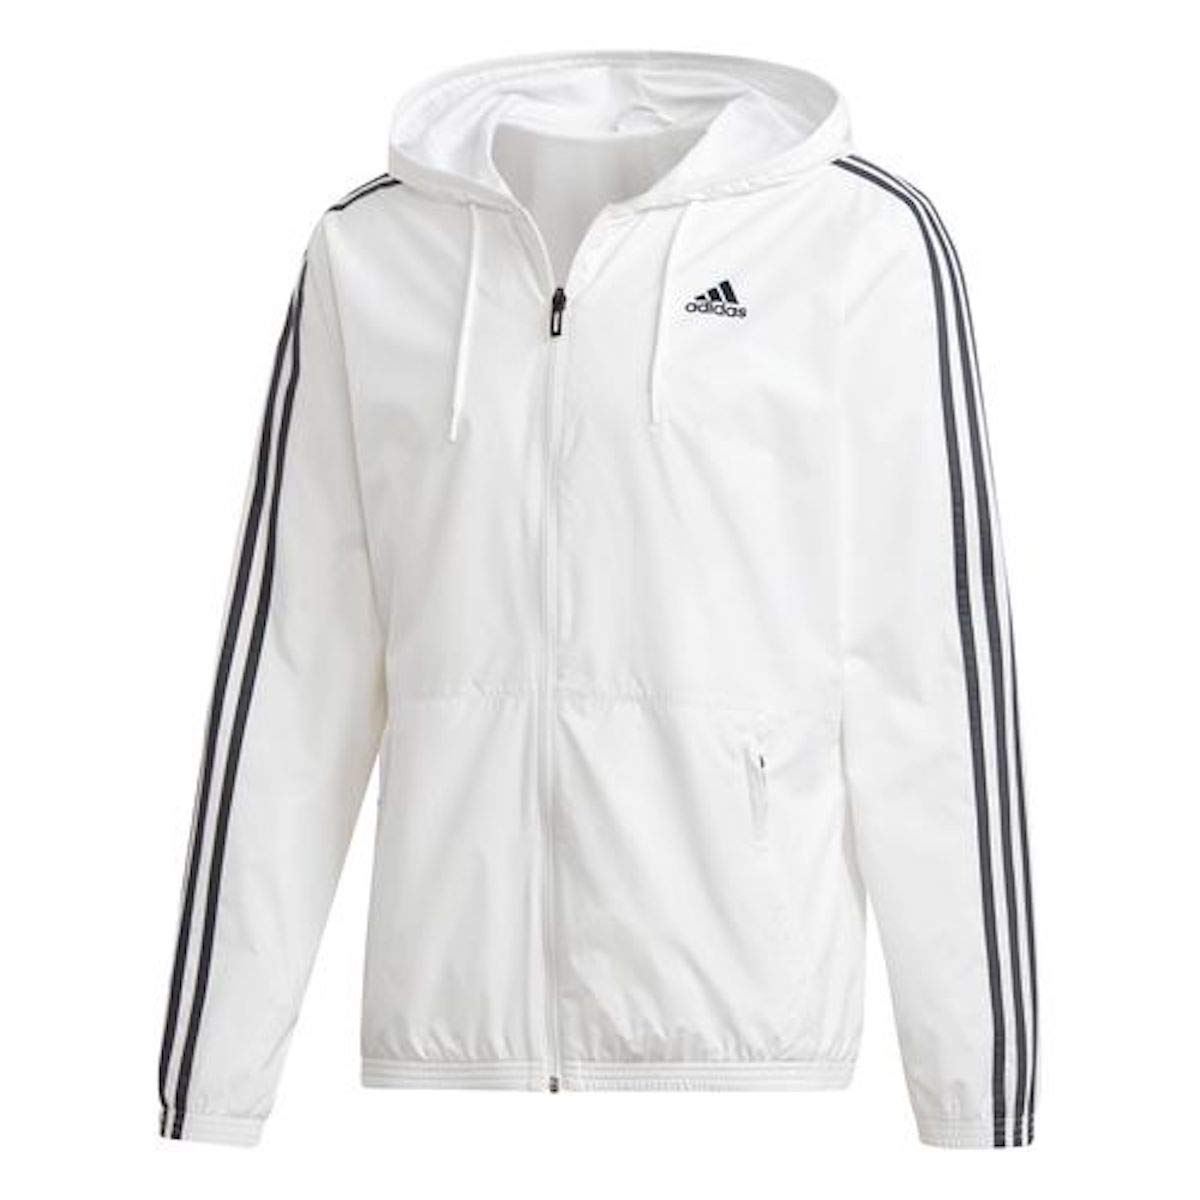 adidas Men's Essentials Wind Jacket (Medium, White/Grey) by adidas (Image #1)